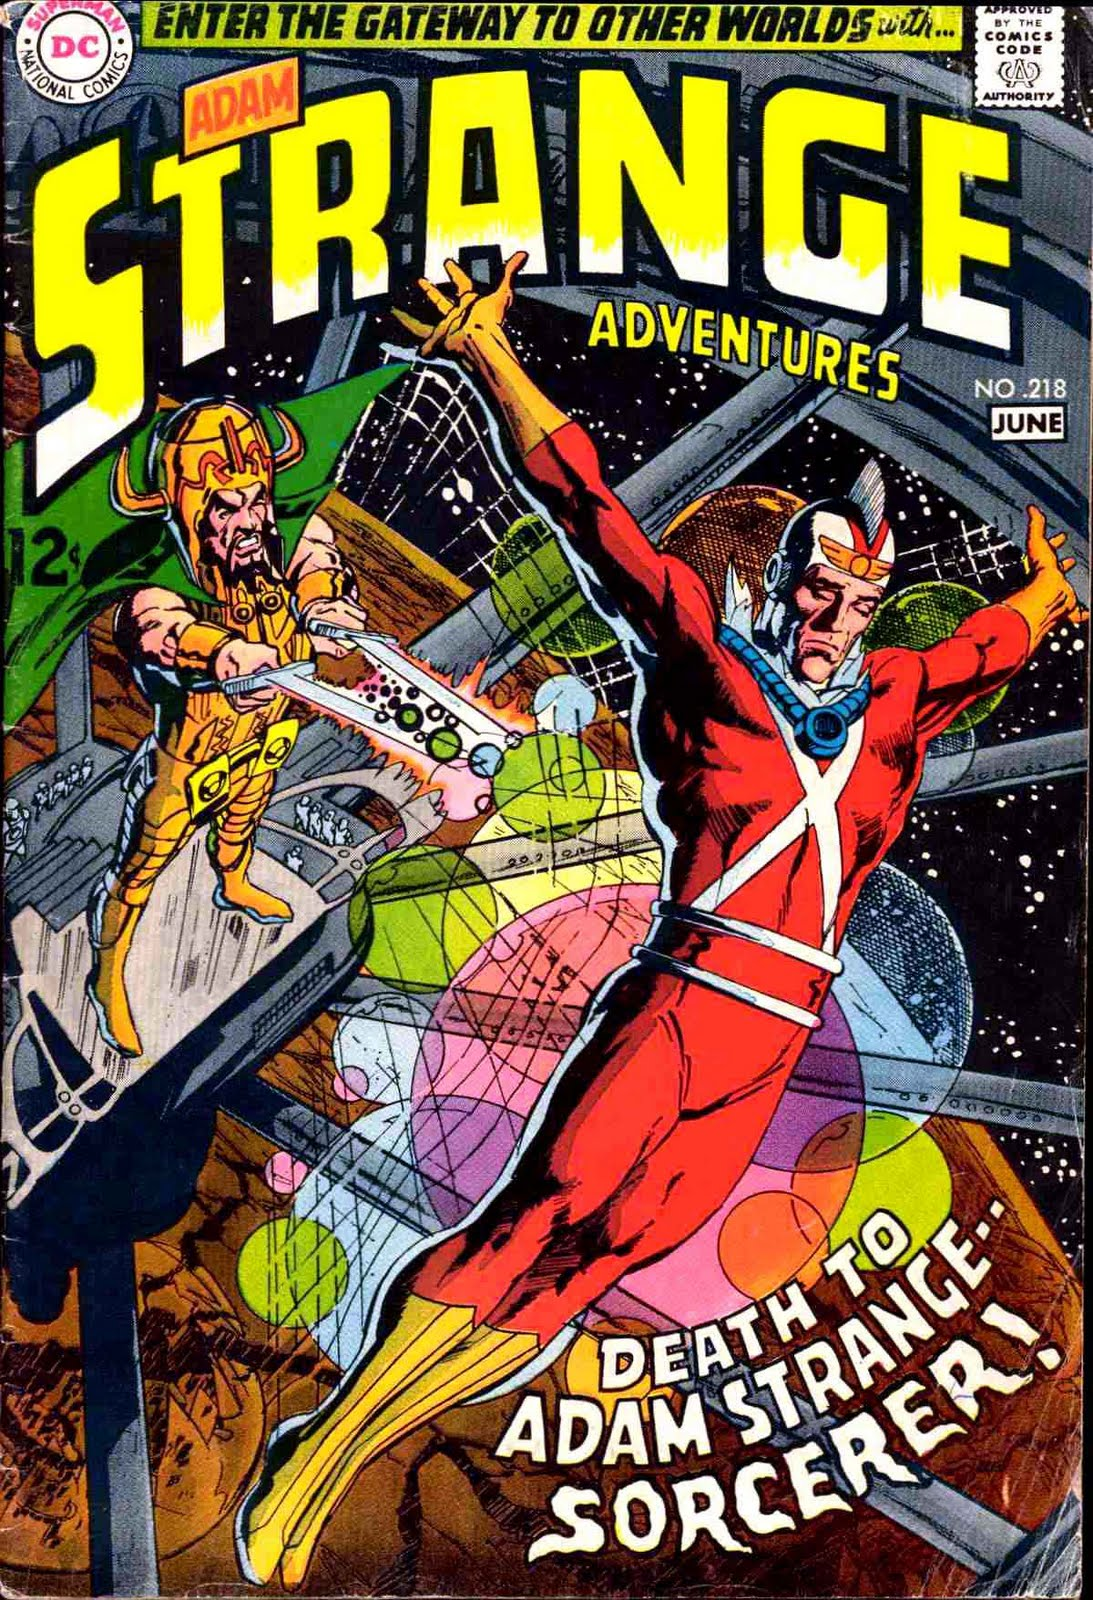 Strange Adventures (1950) #218. Cover by Neal Adams.